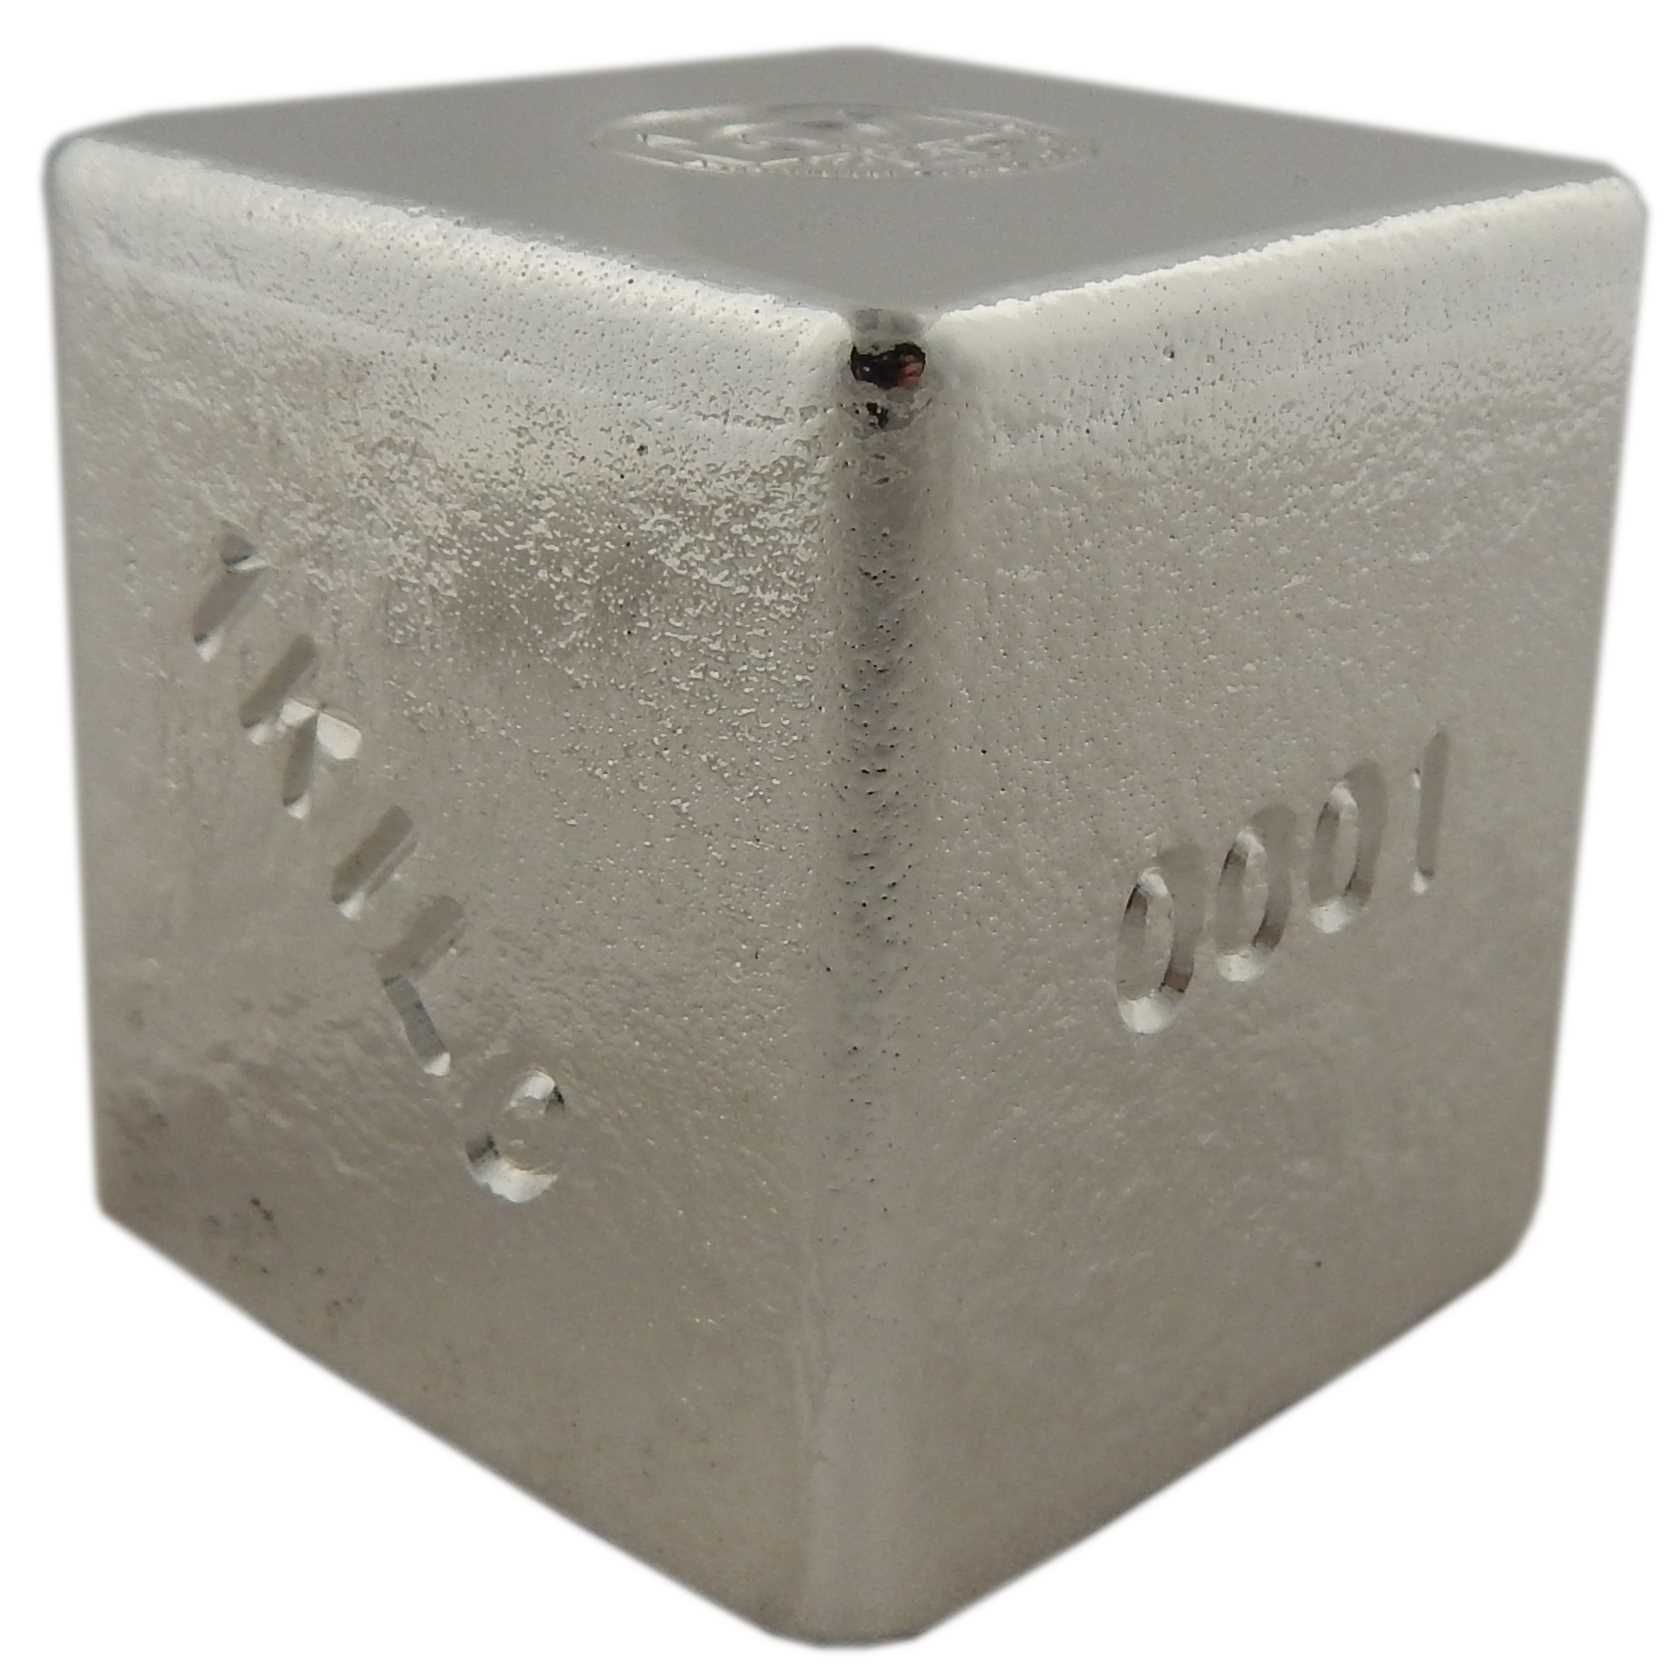 Hand Poured 1 Kilo Silver Bar Cube 999 Fine Silver By Shinybars Silver Bars Hand Poured Fine Silver